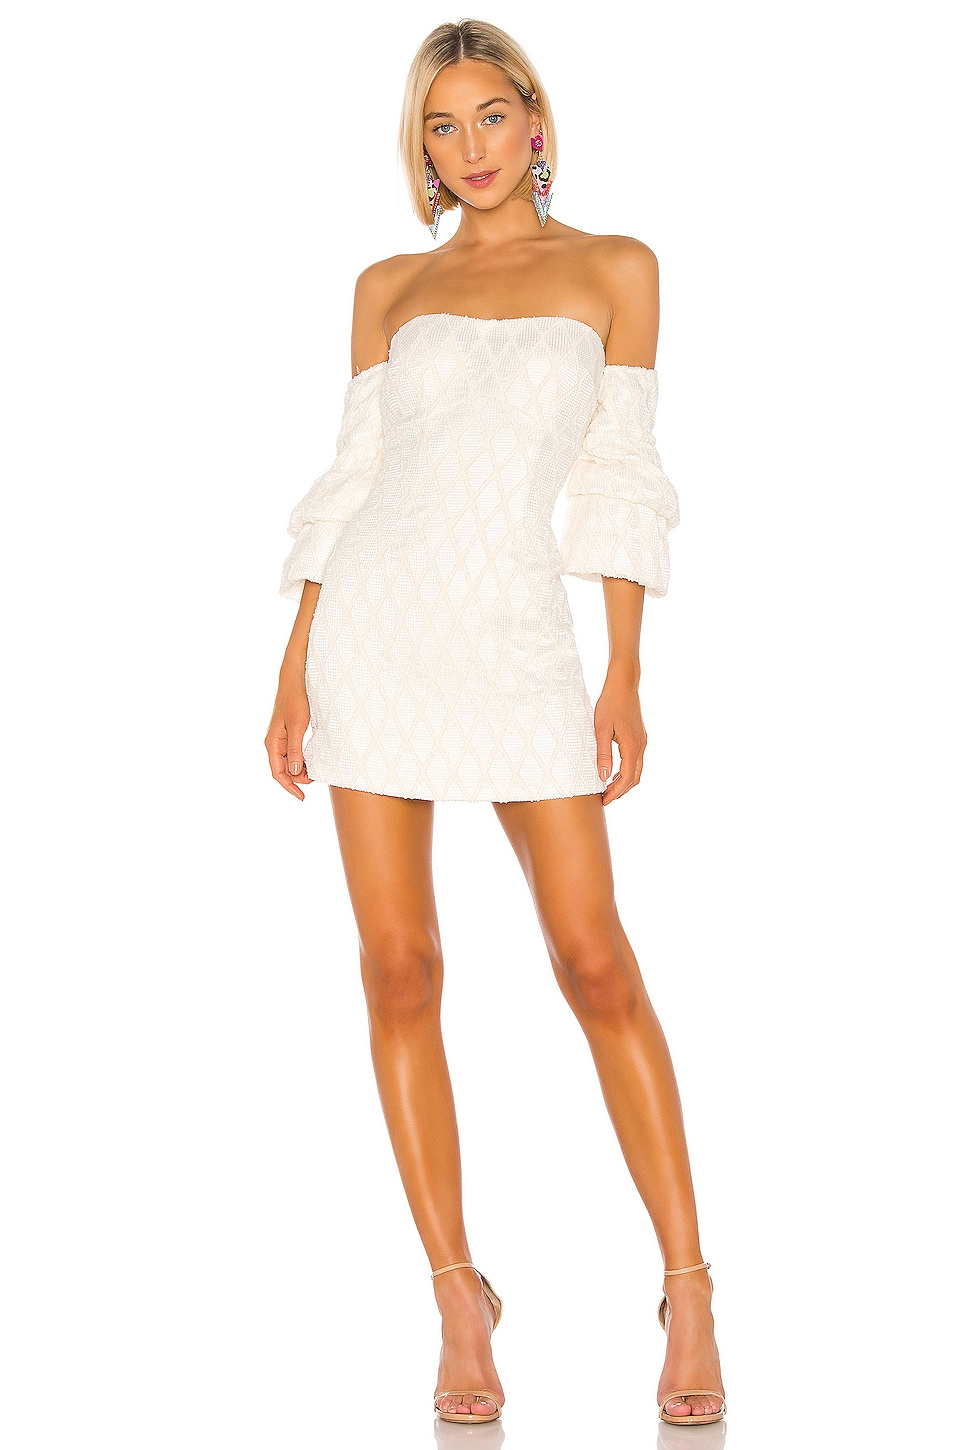 Atoir New Theory Dress in Ivory